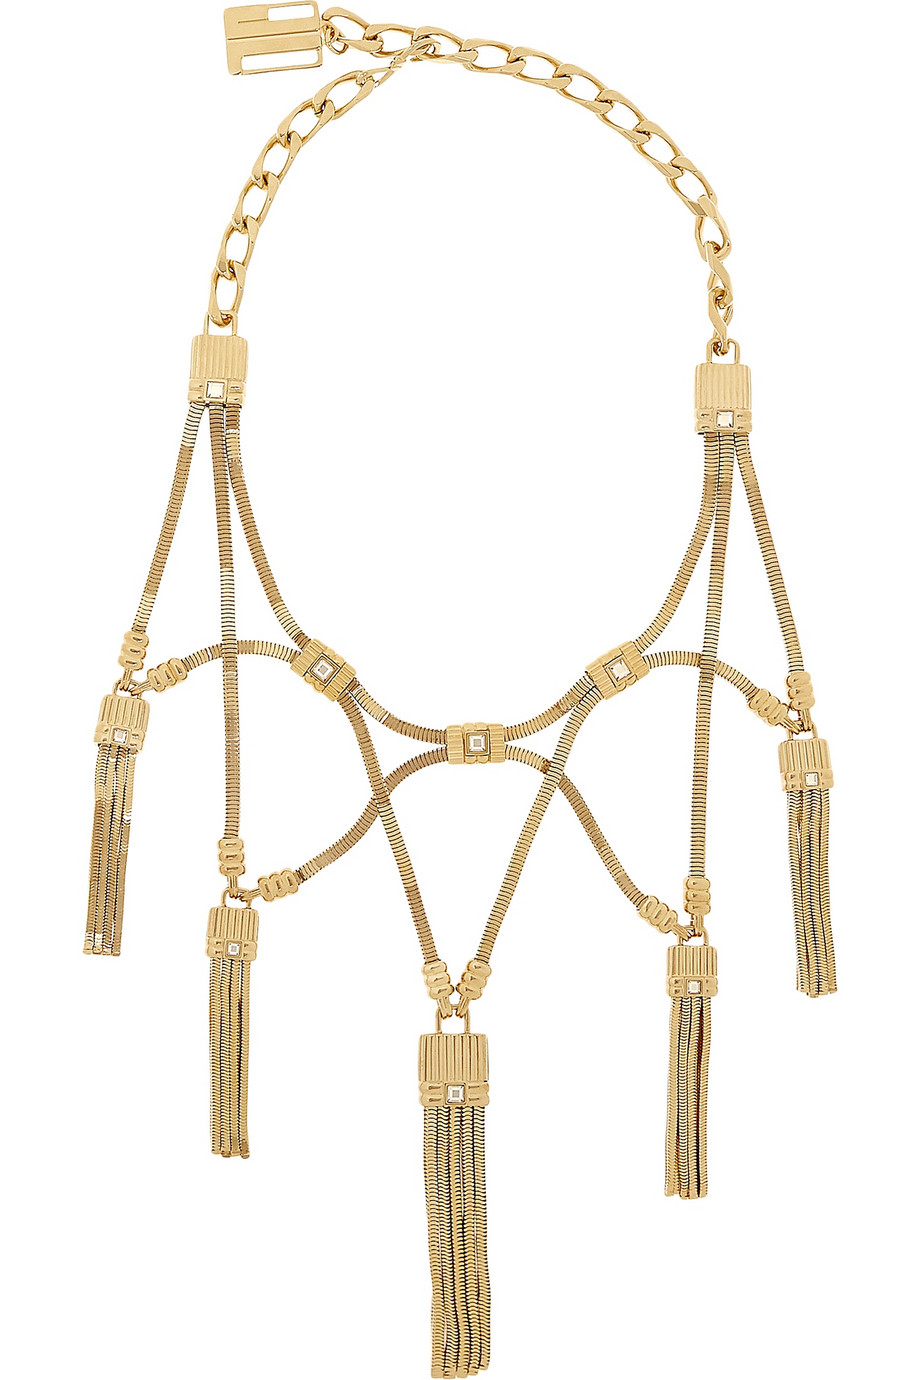 Lanvin, France  . Tasseled Gold Tone Necklace. Gold-tone brass and Swarovski Crystals.